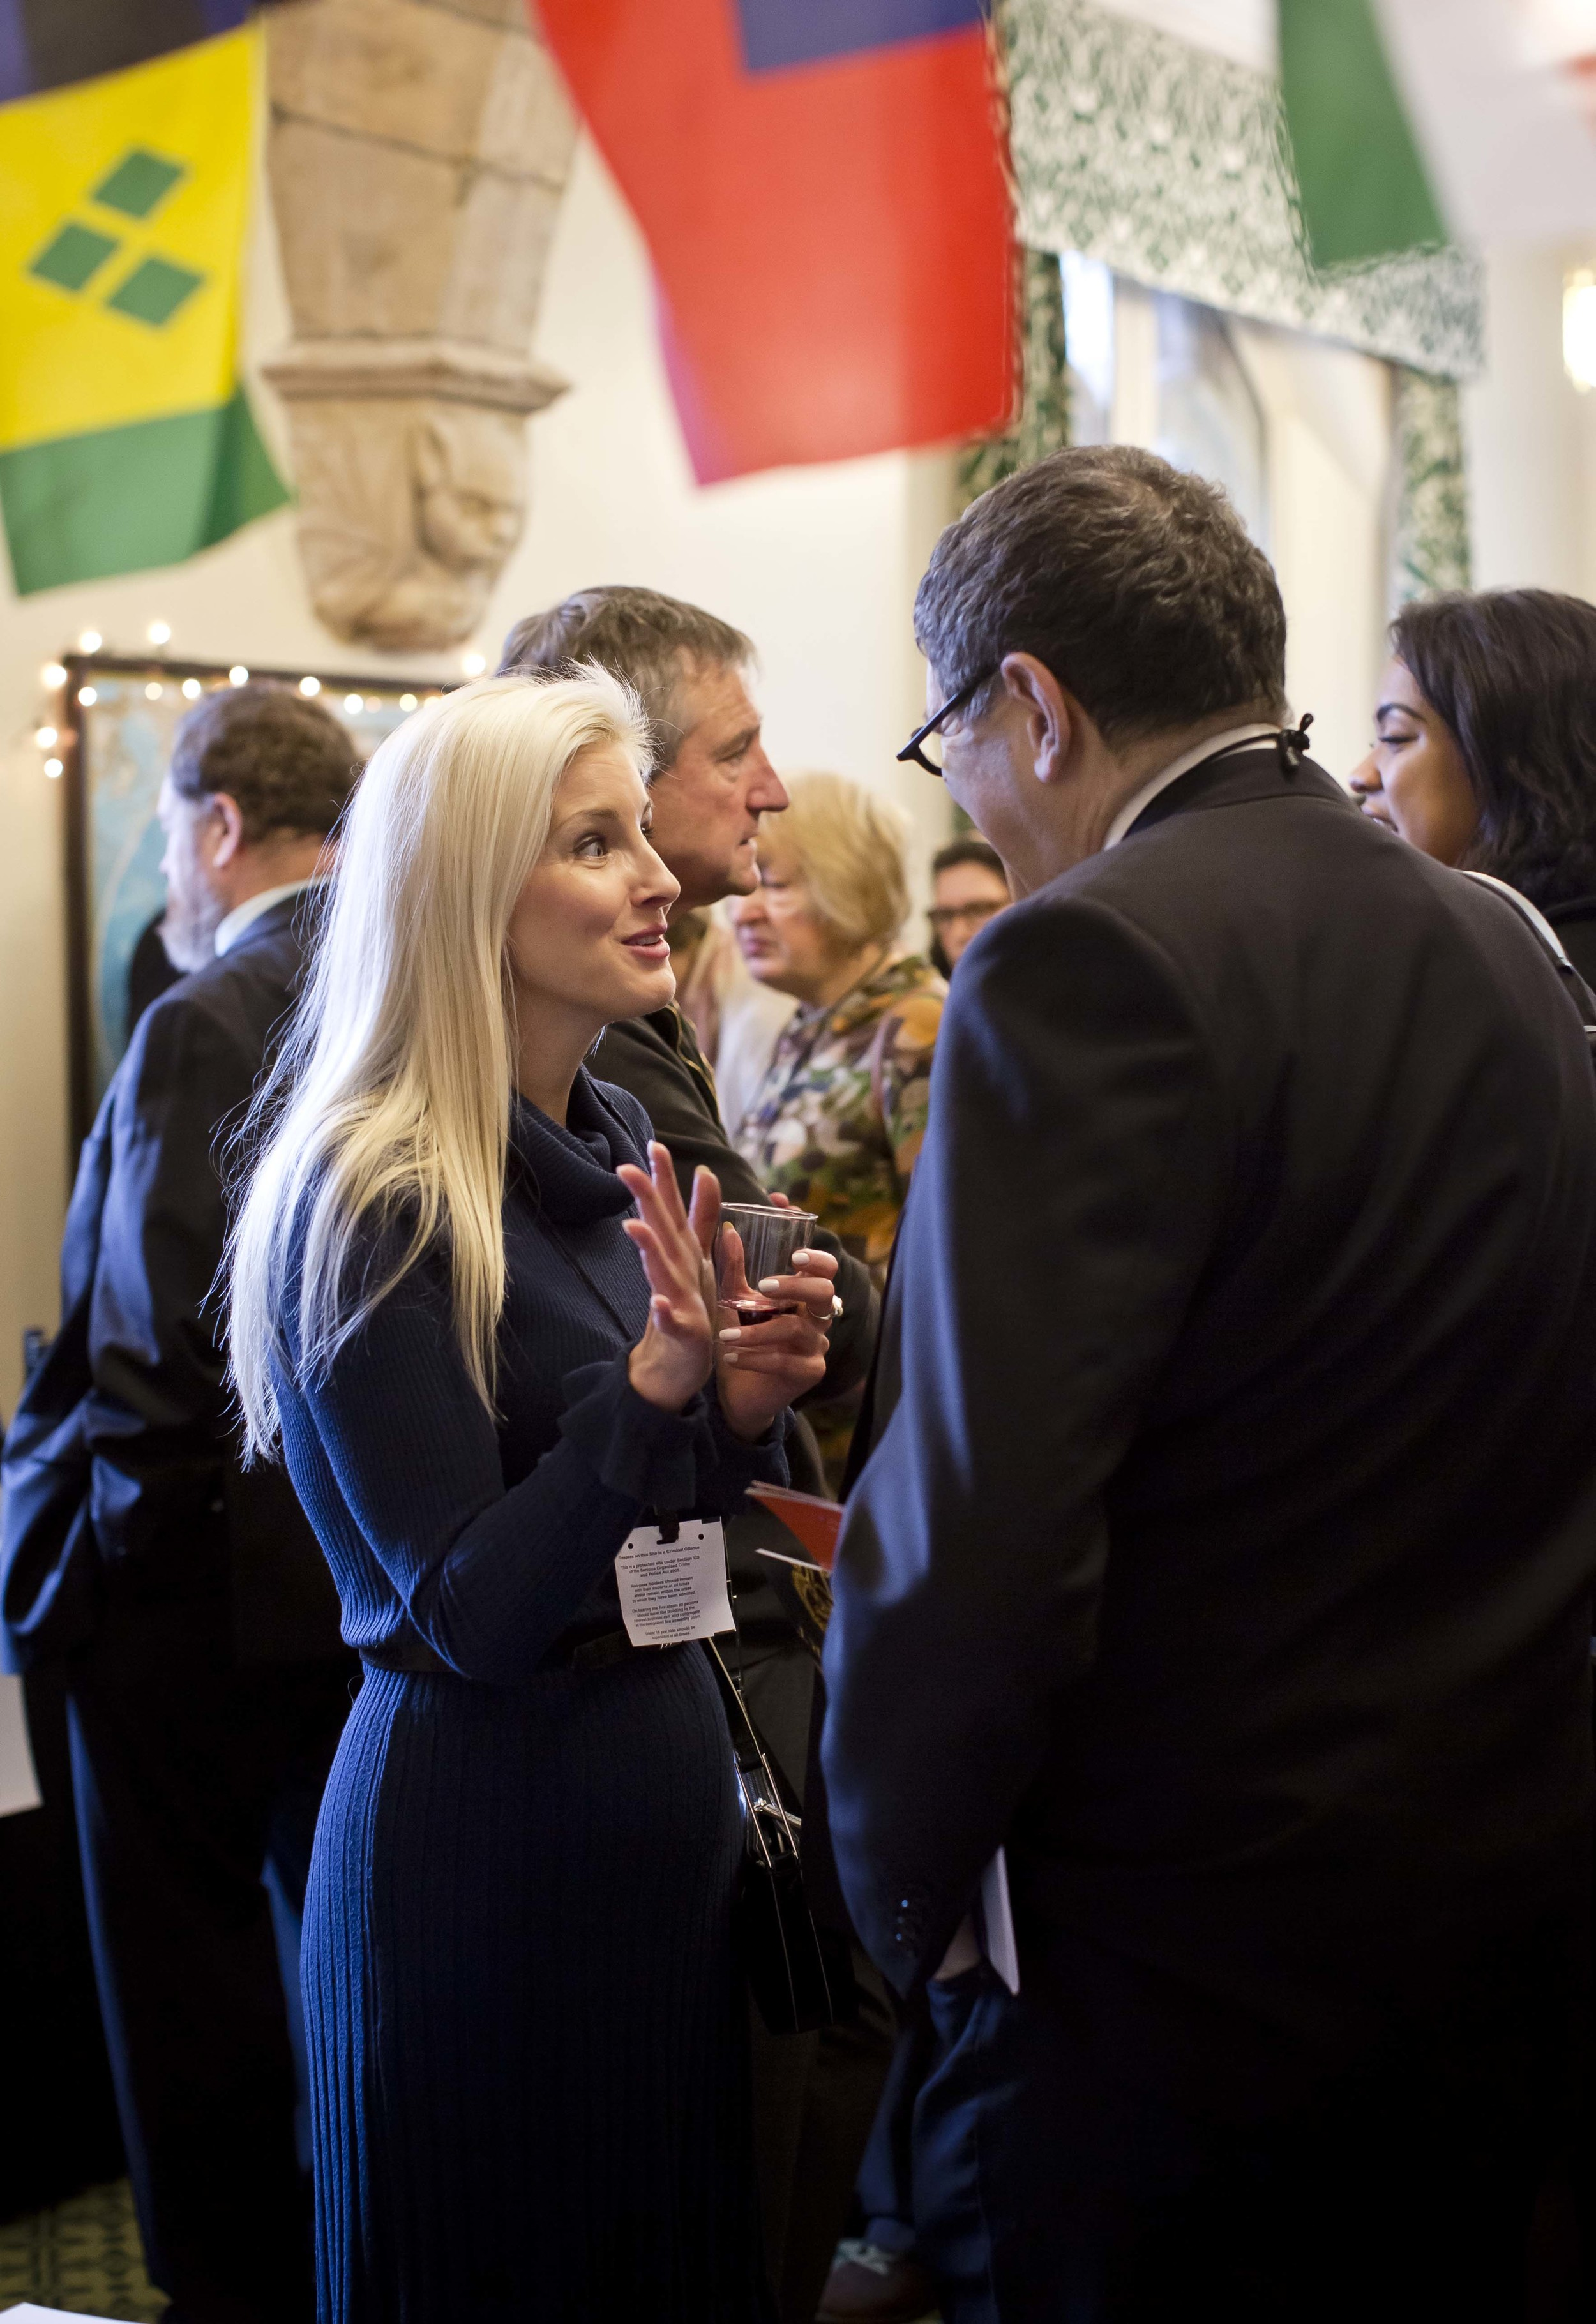 Commonwealth food event 2014-2575.jpg